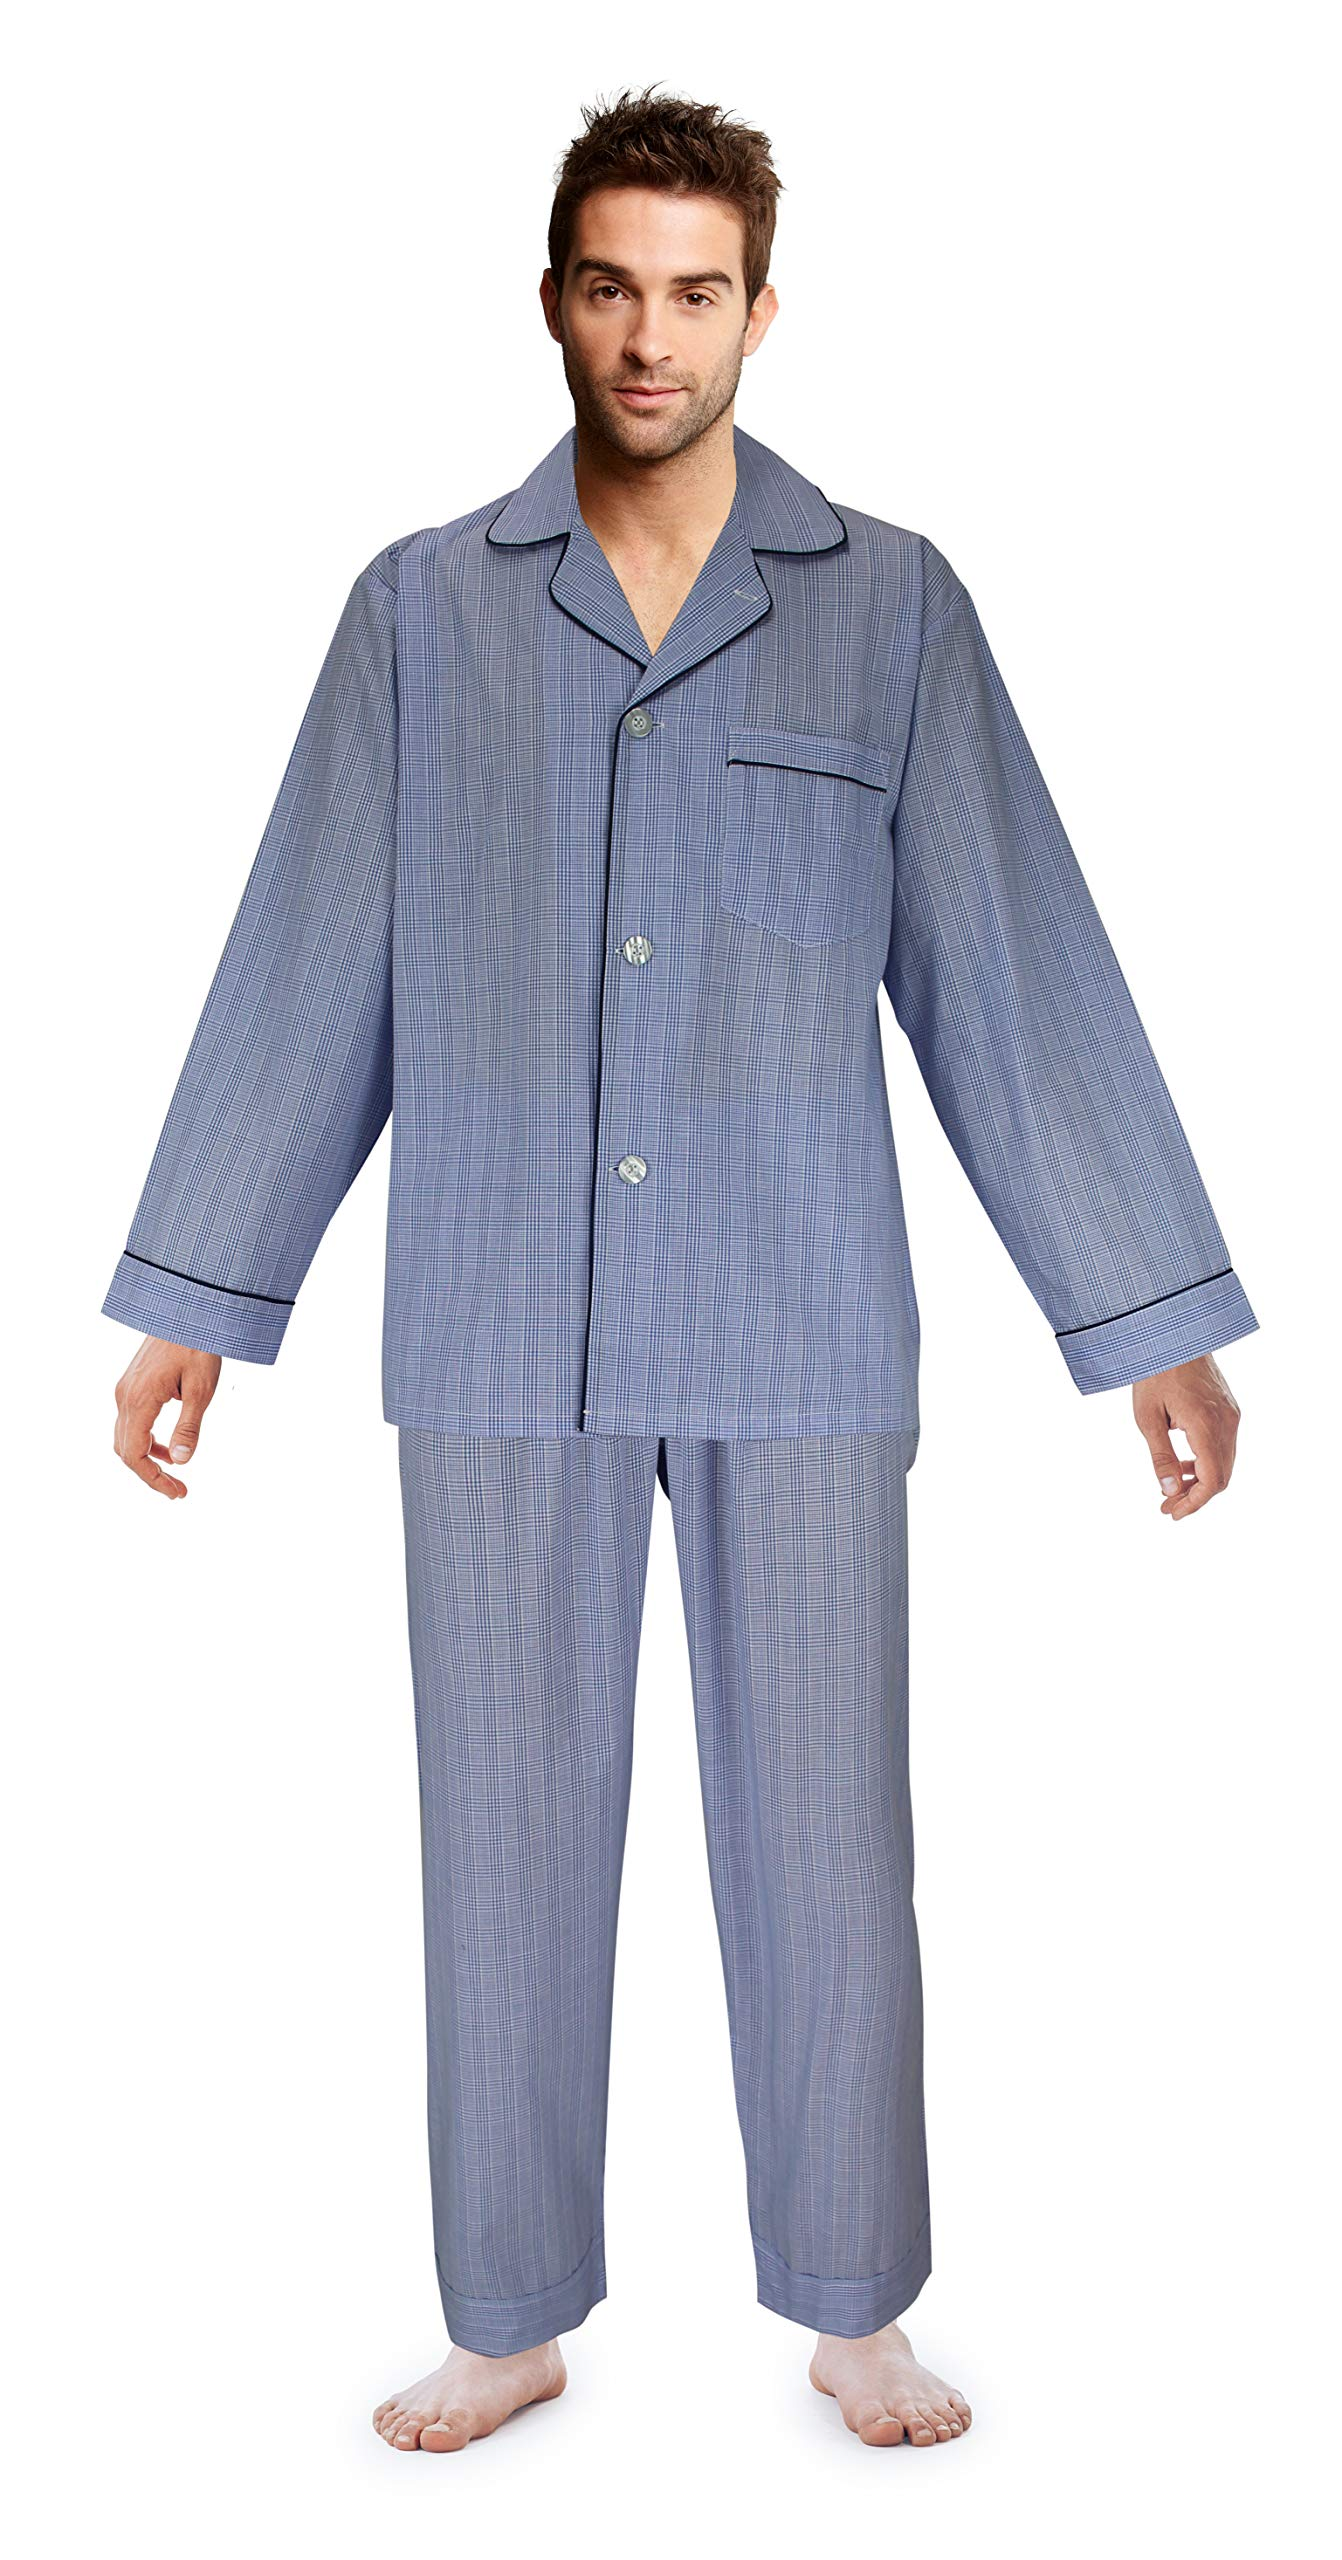 Casual Trends Big Boys Button Front Pajama Set, Size 20